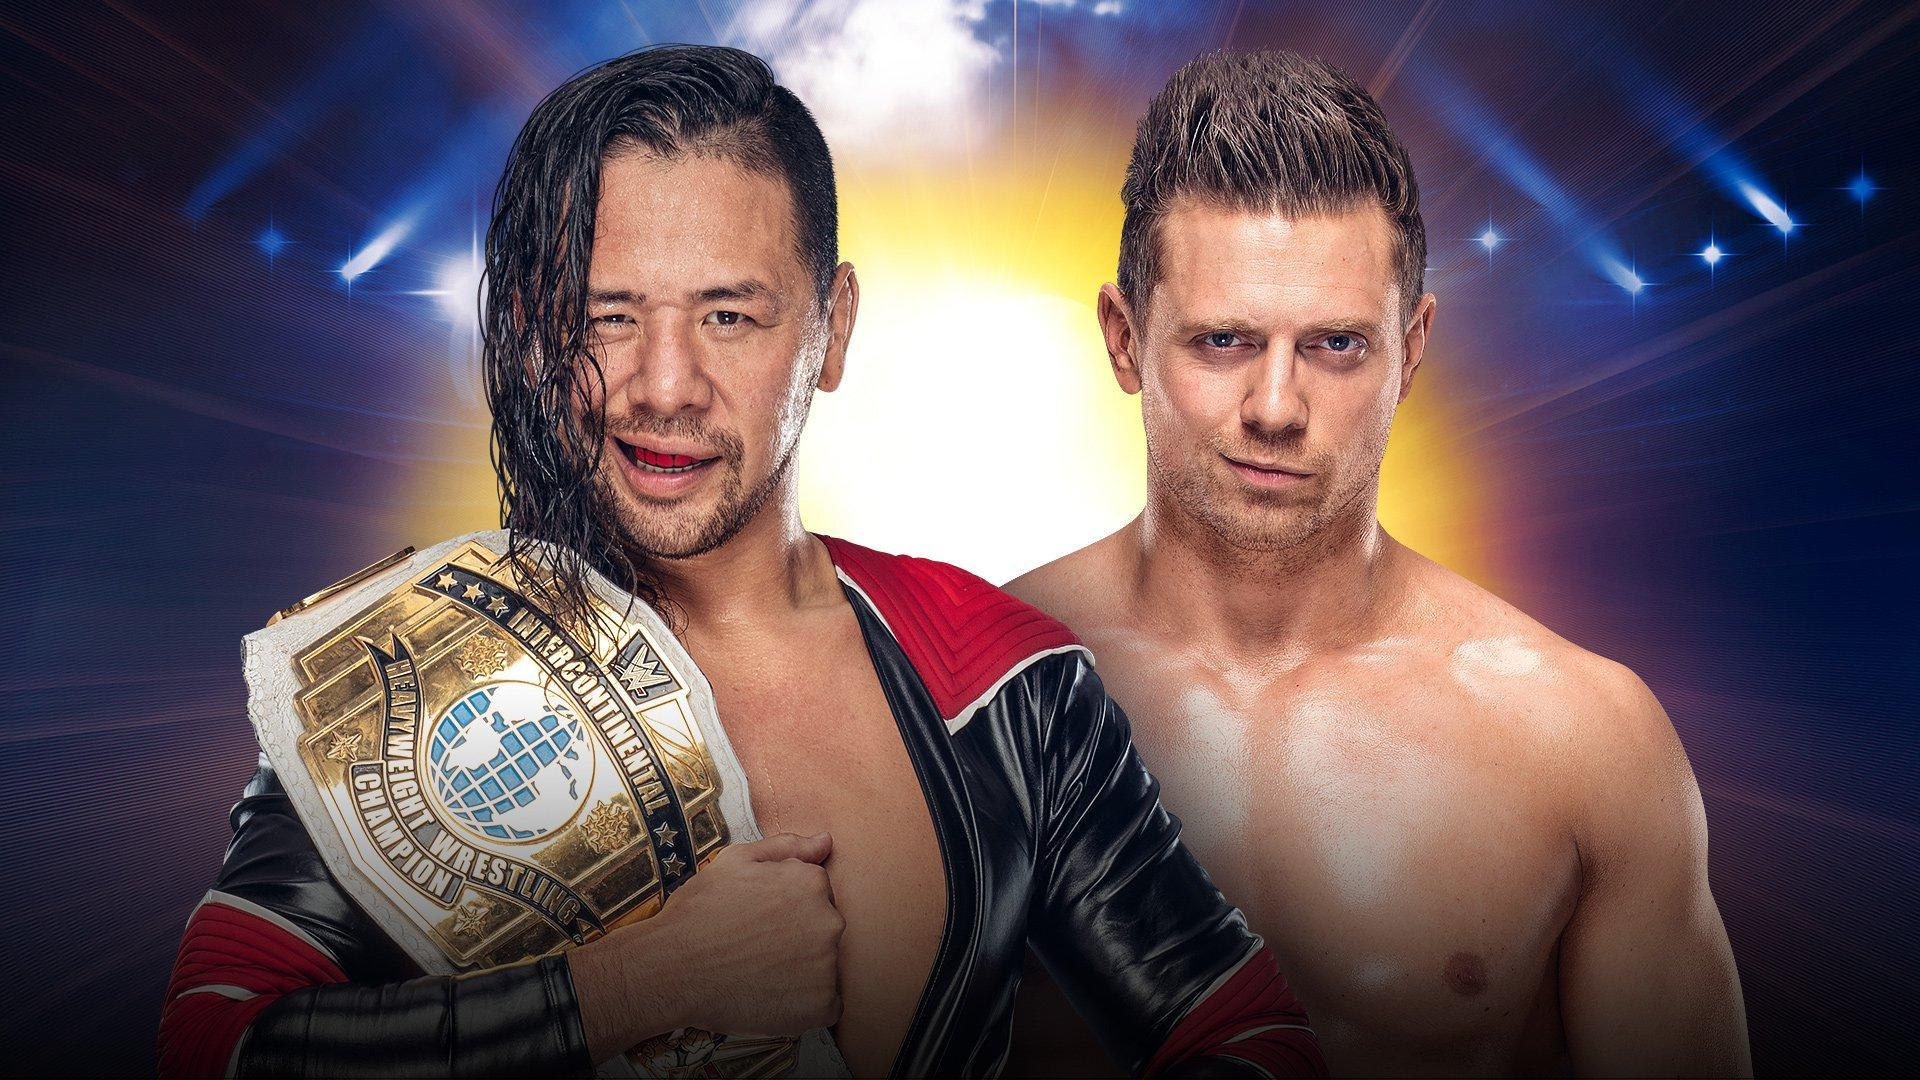 Image result for Clash of Champions 2019 matches